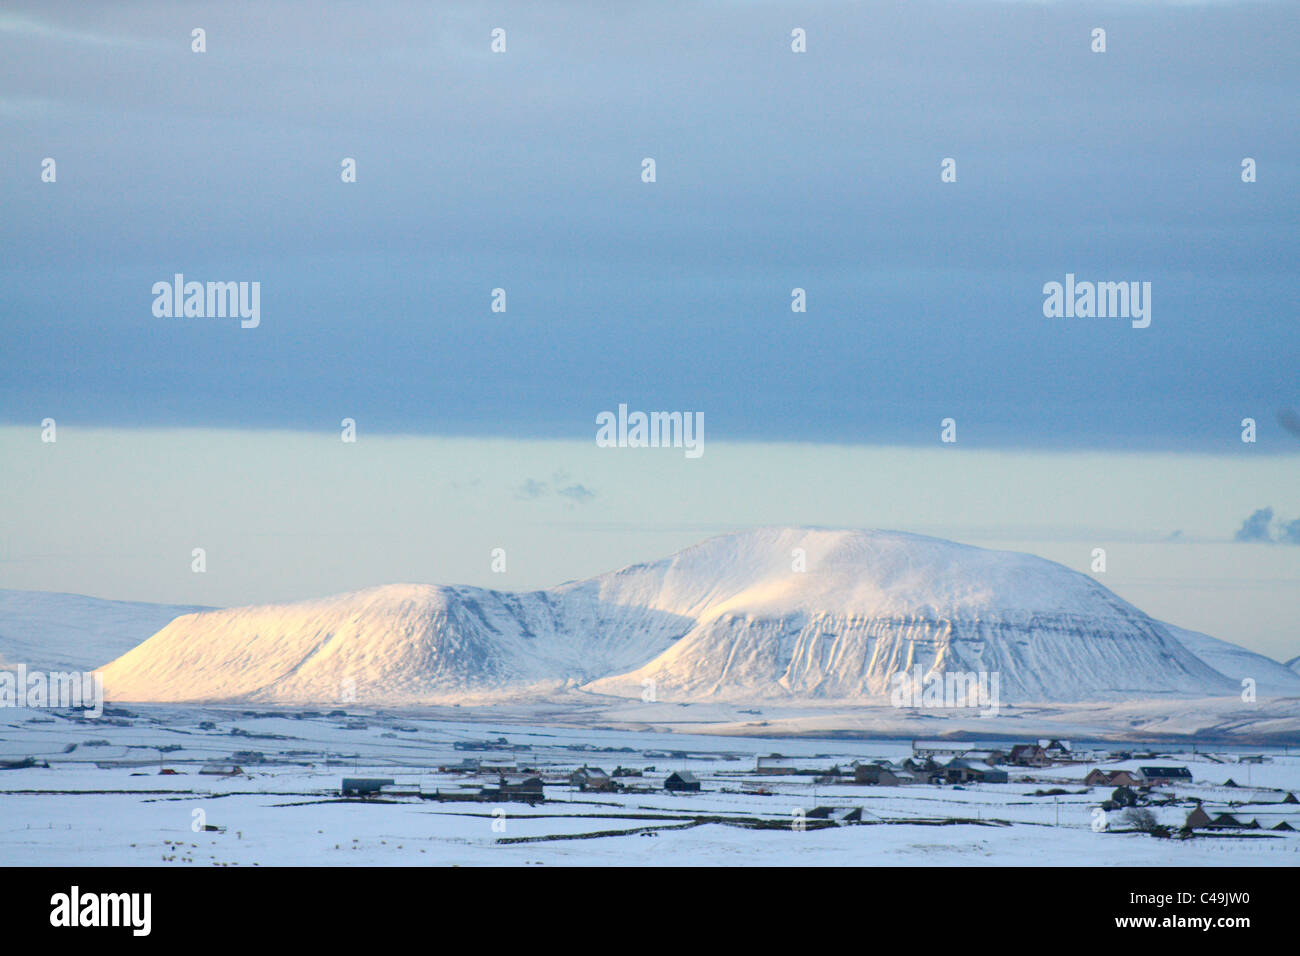 Ward Hill in winter, Orkney isles - Stock Image